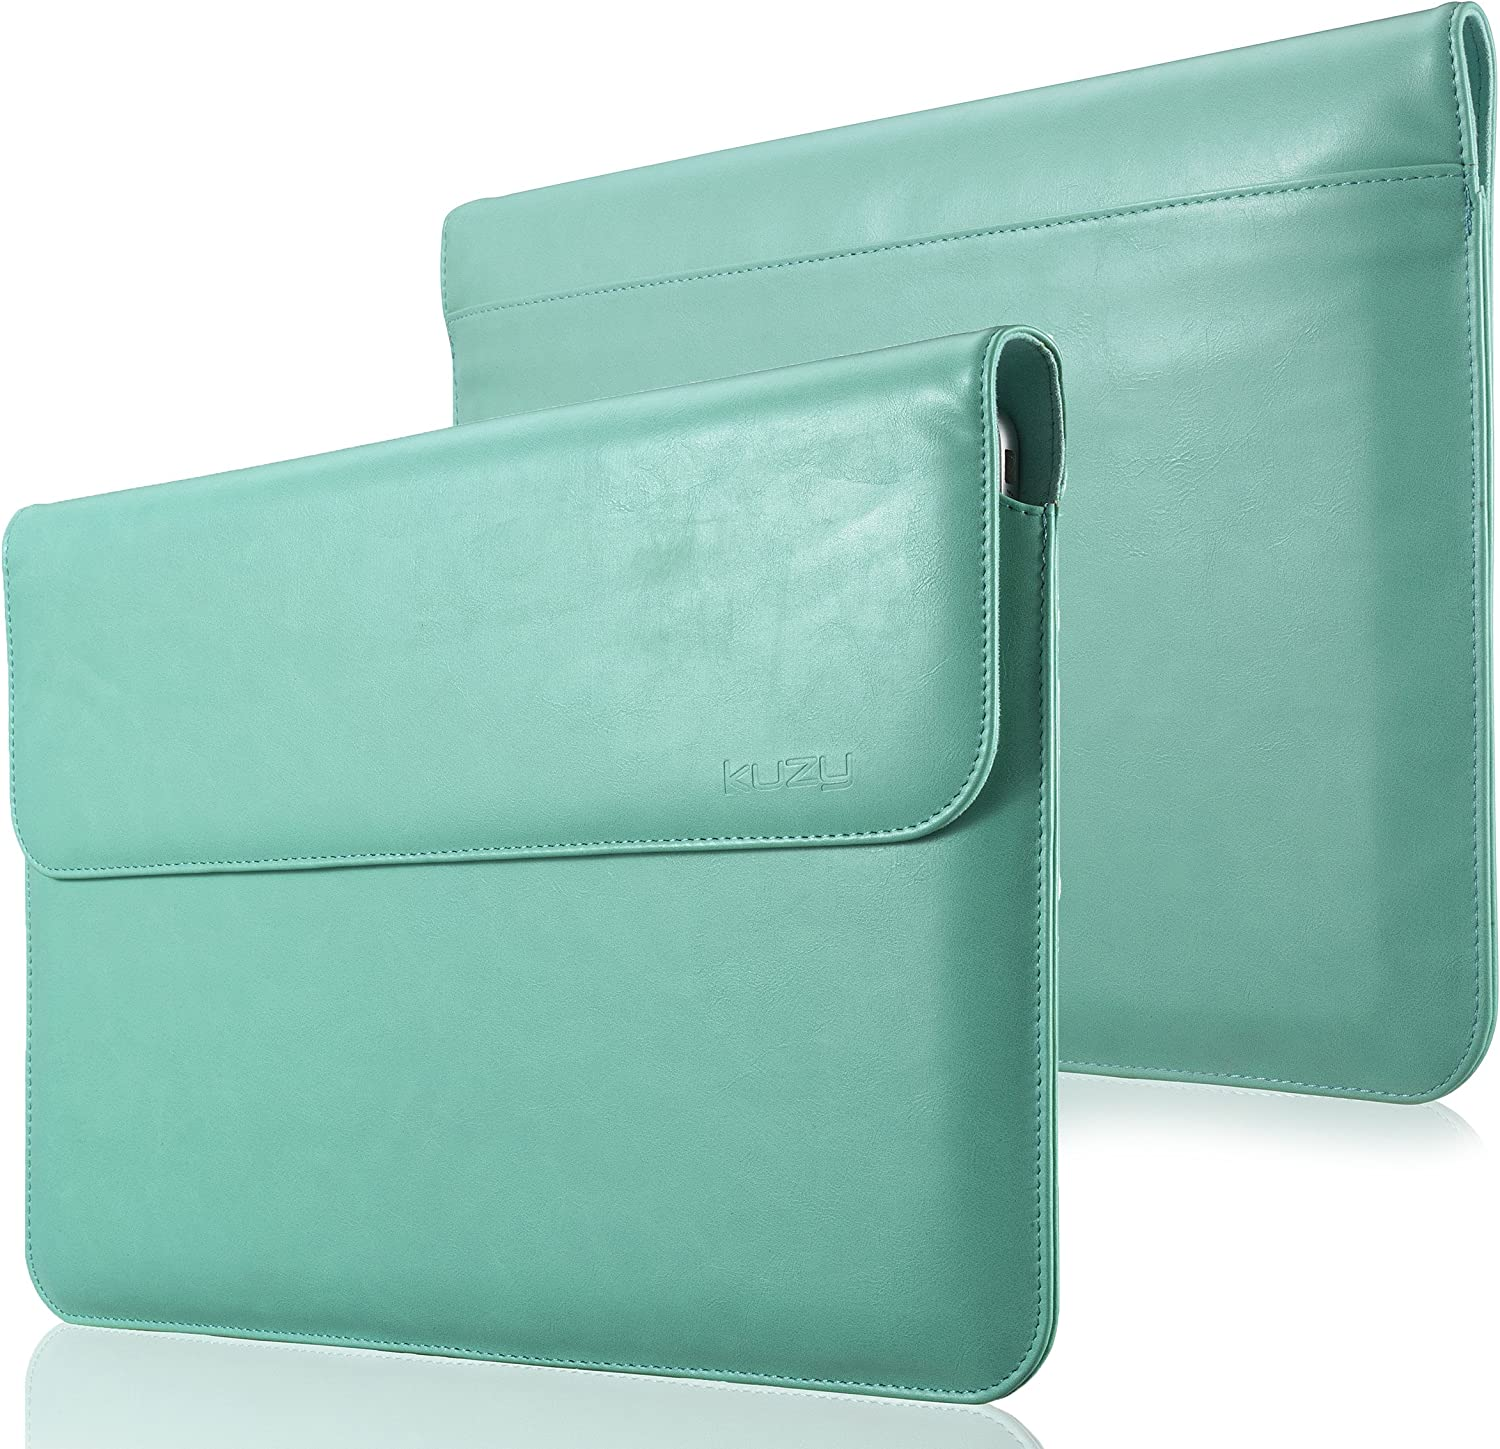 Kuzy - MacBook Pro 13 inch Sleeve Leather, 13 inch Laptop Sleeve Case for MacBook Air 13 inch Sleeve Case Cover (New Version) PU Leather Laptop Sleeve - Teal